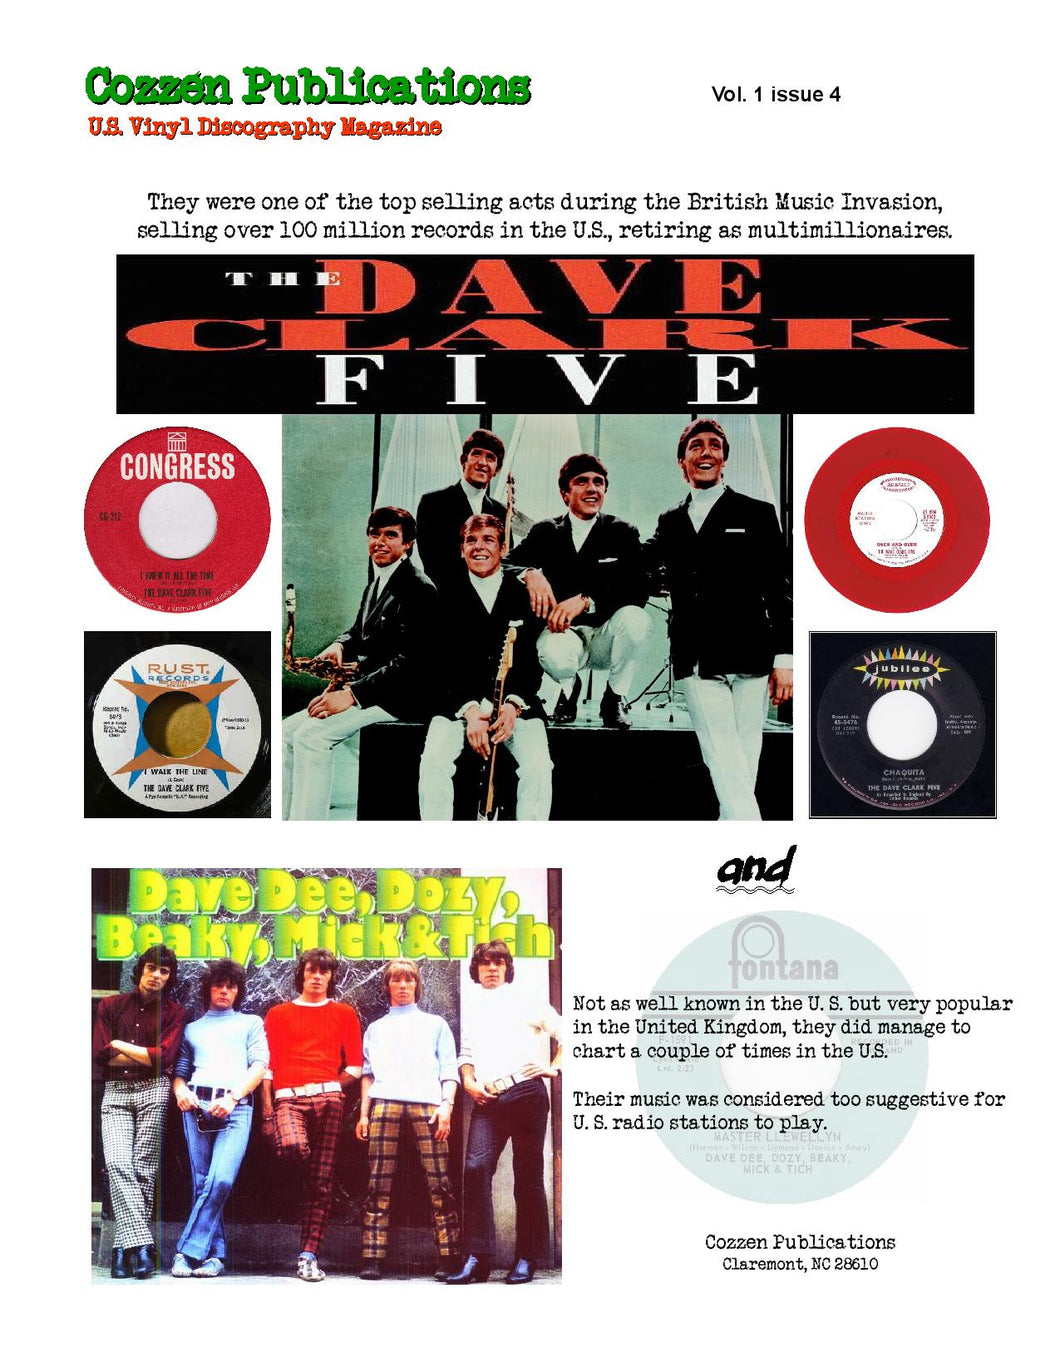 The Dave Clark Five & Dave Dee, Dozy, Beaky, Mick & Tich - U.S. Vinyl Discography Magazine - Vol. 1, Issue 4